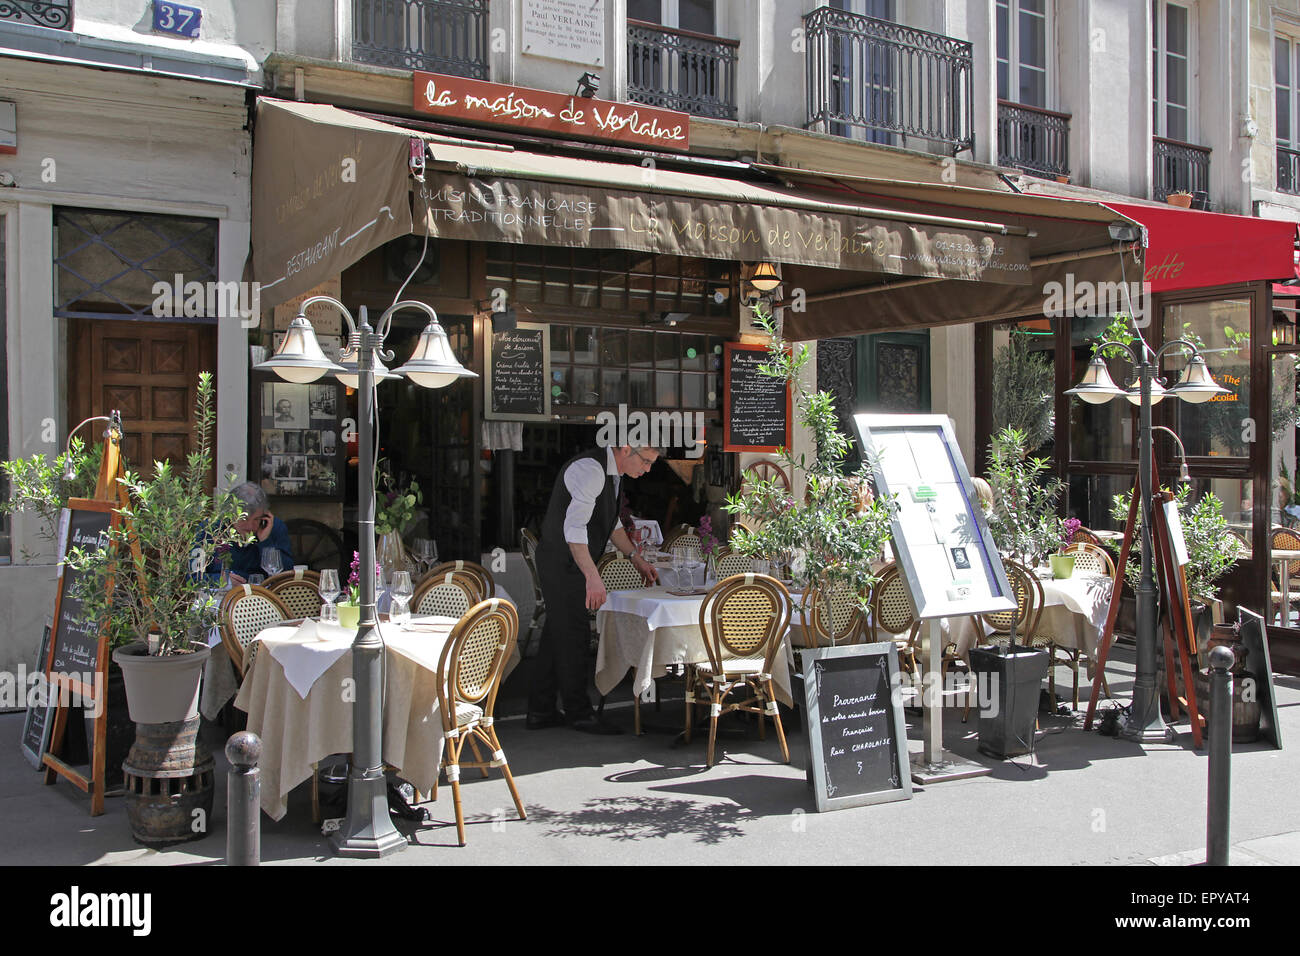 Paris restaurant bistro teracce spring french food culture - Stock Image